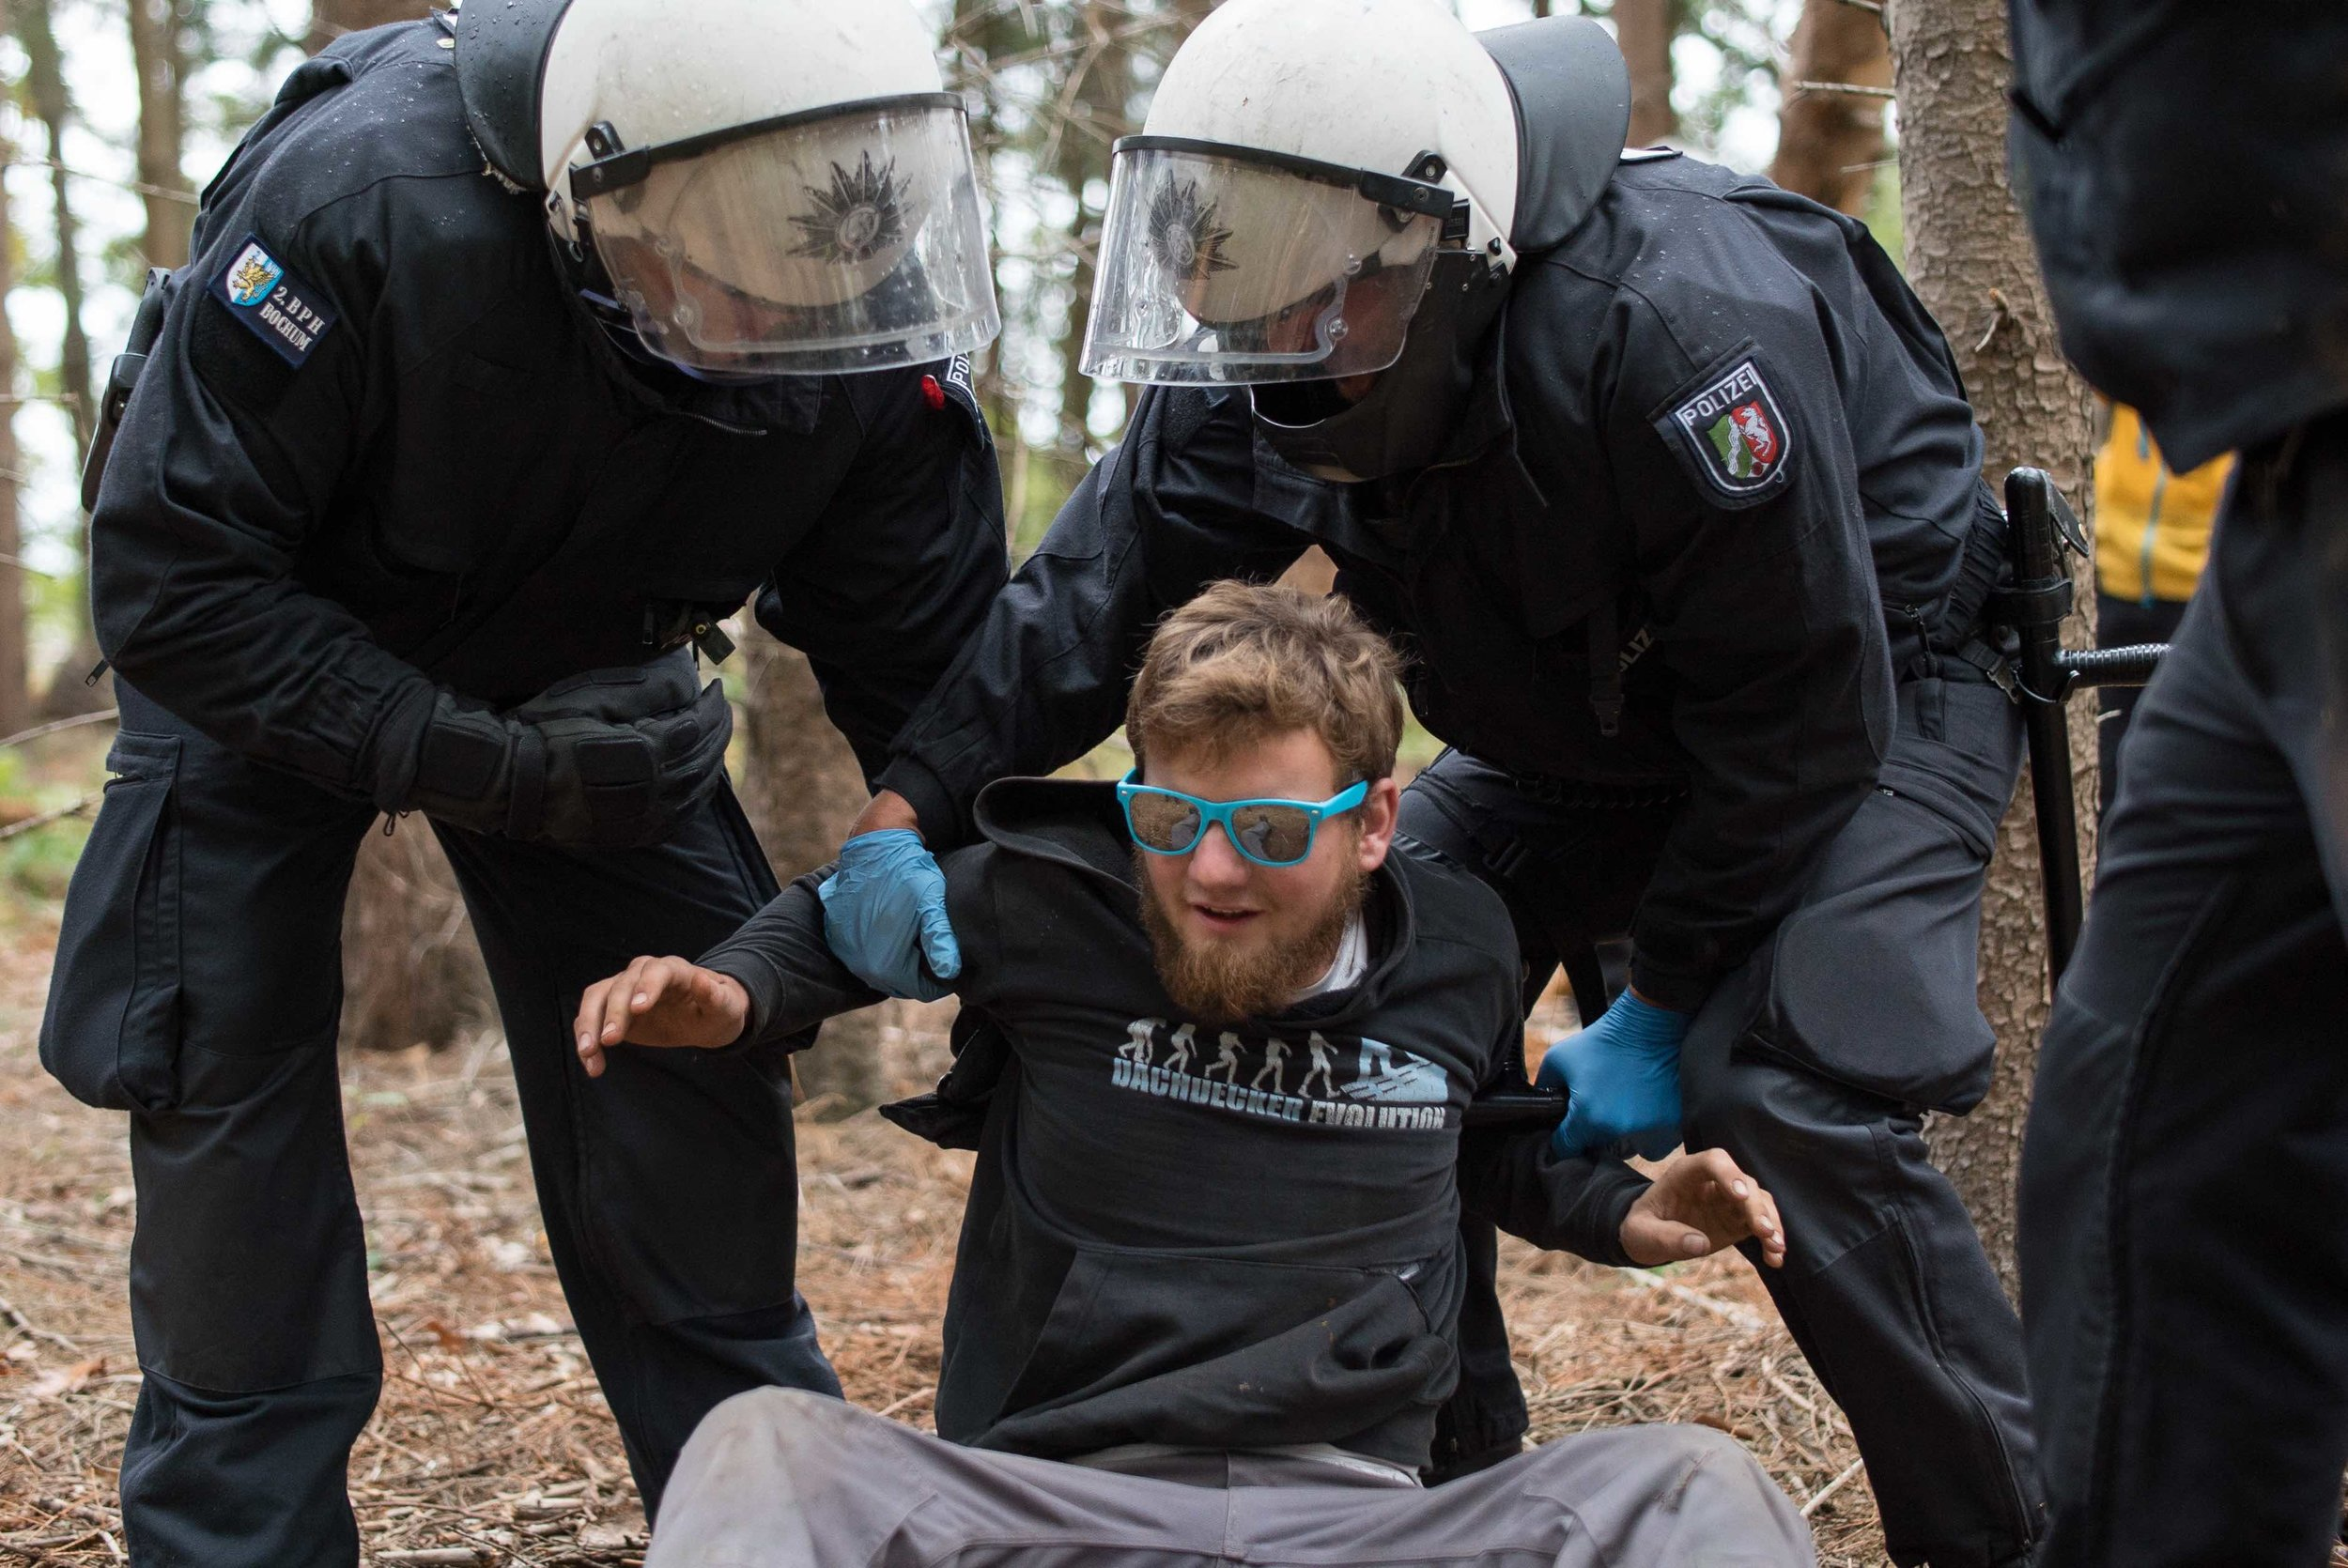 Hambi Bleibt - Photos of the protests attempting save the Hambach Forest from RWE's expanding coal mine.(Photographer, Videographer)